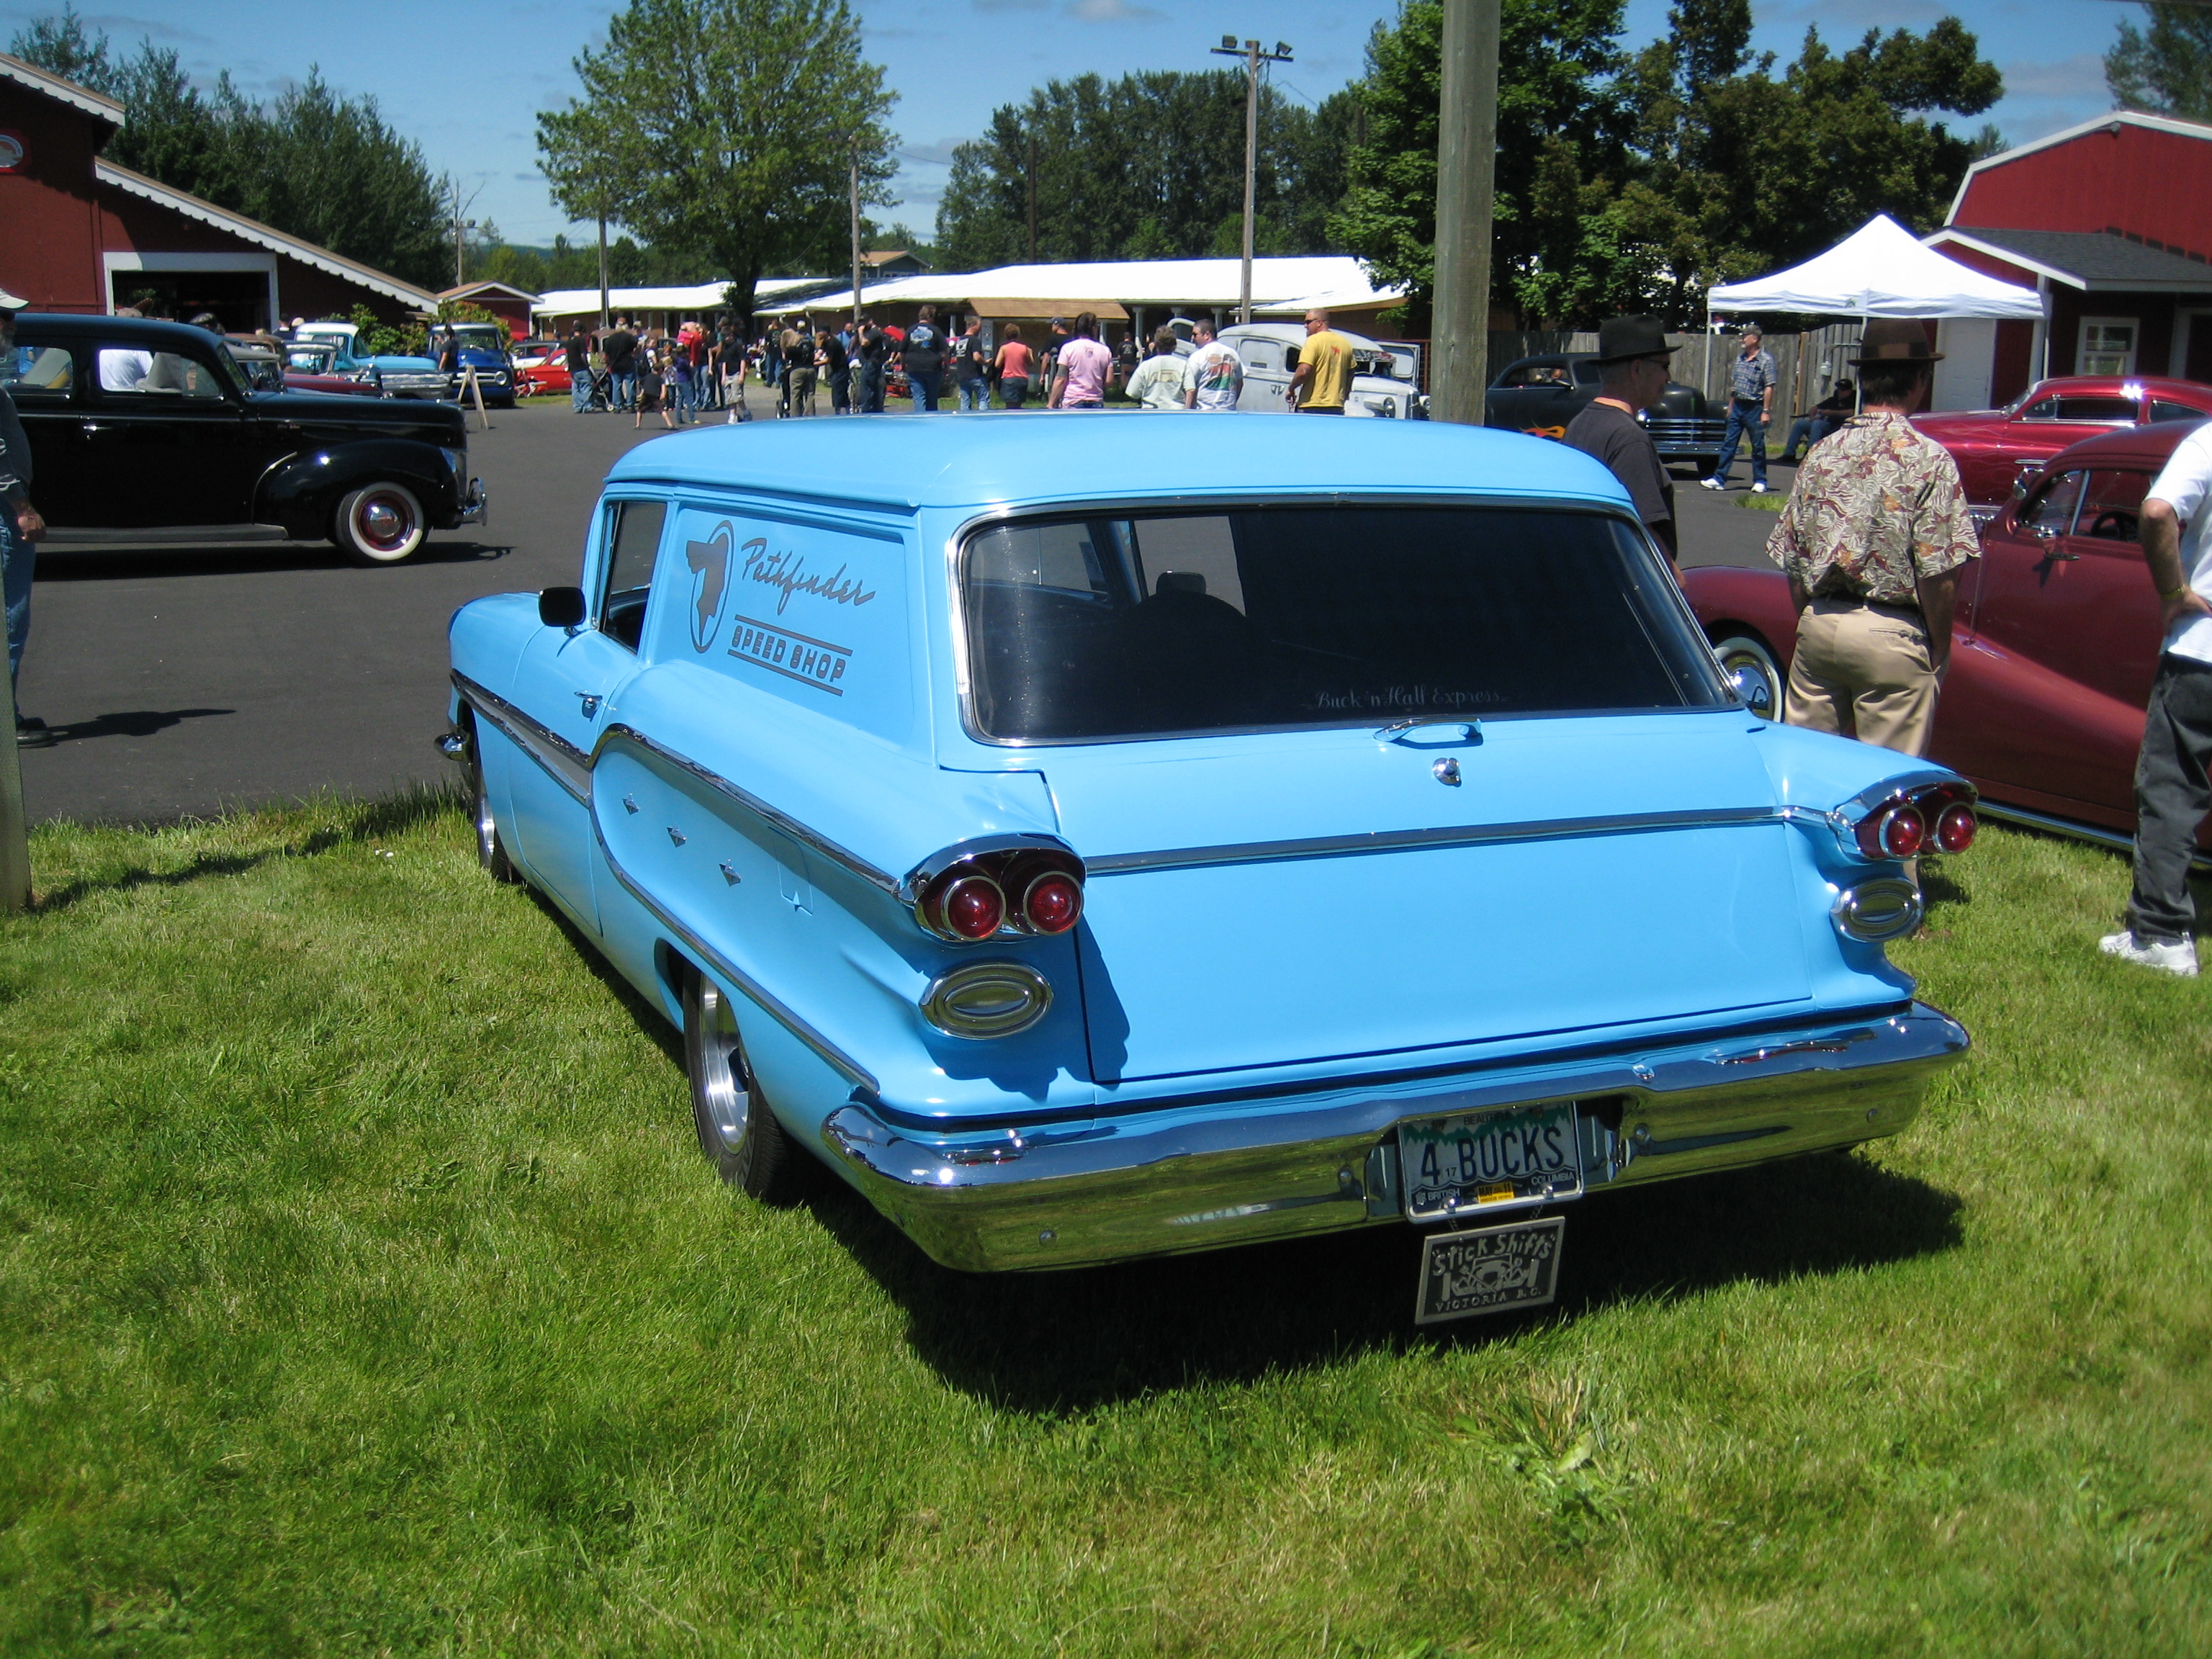 1958 Pontiac Strato Chief Sedan Delivery | Flickr - Photo Sharing!